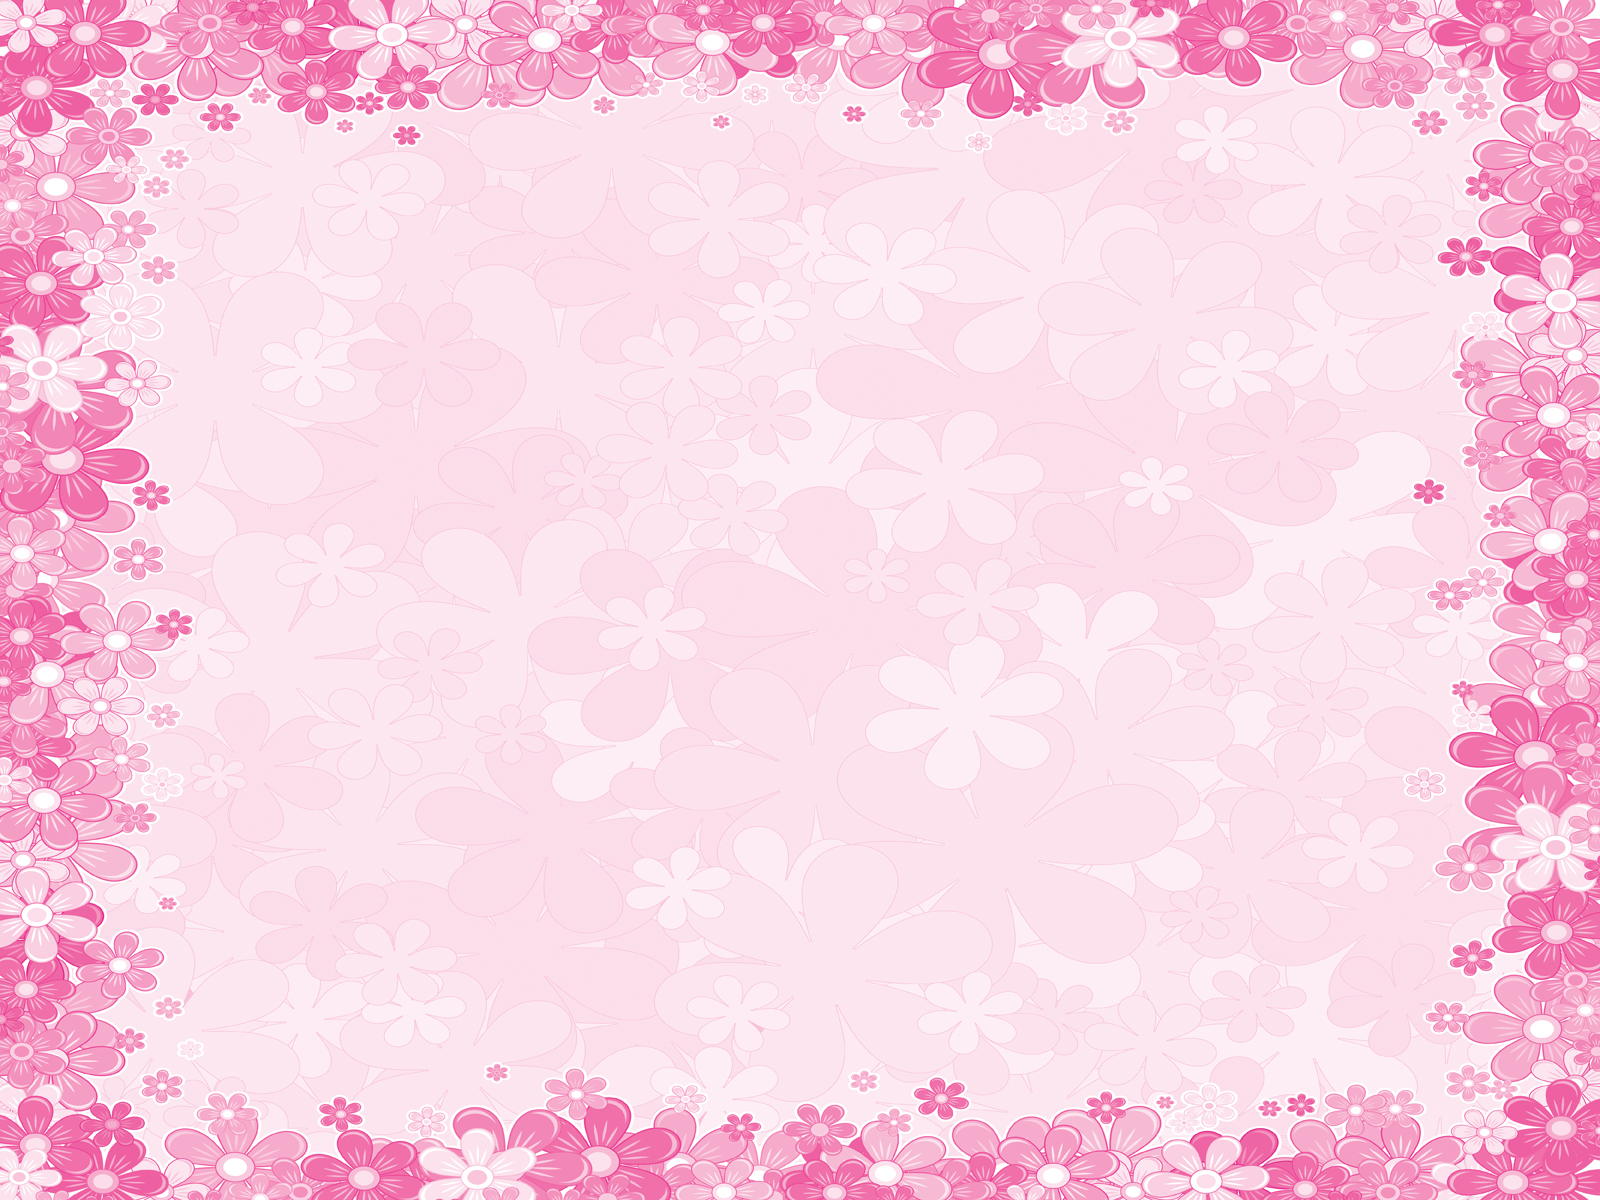 Borders Pink Floral Frames Graphic Backgrounds For Powerpoint